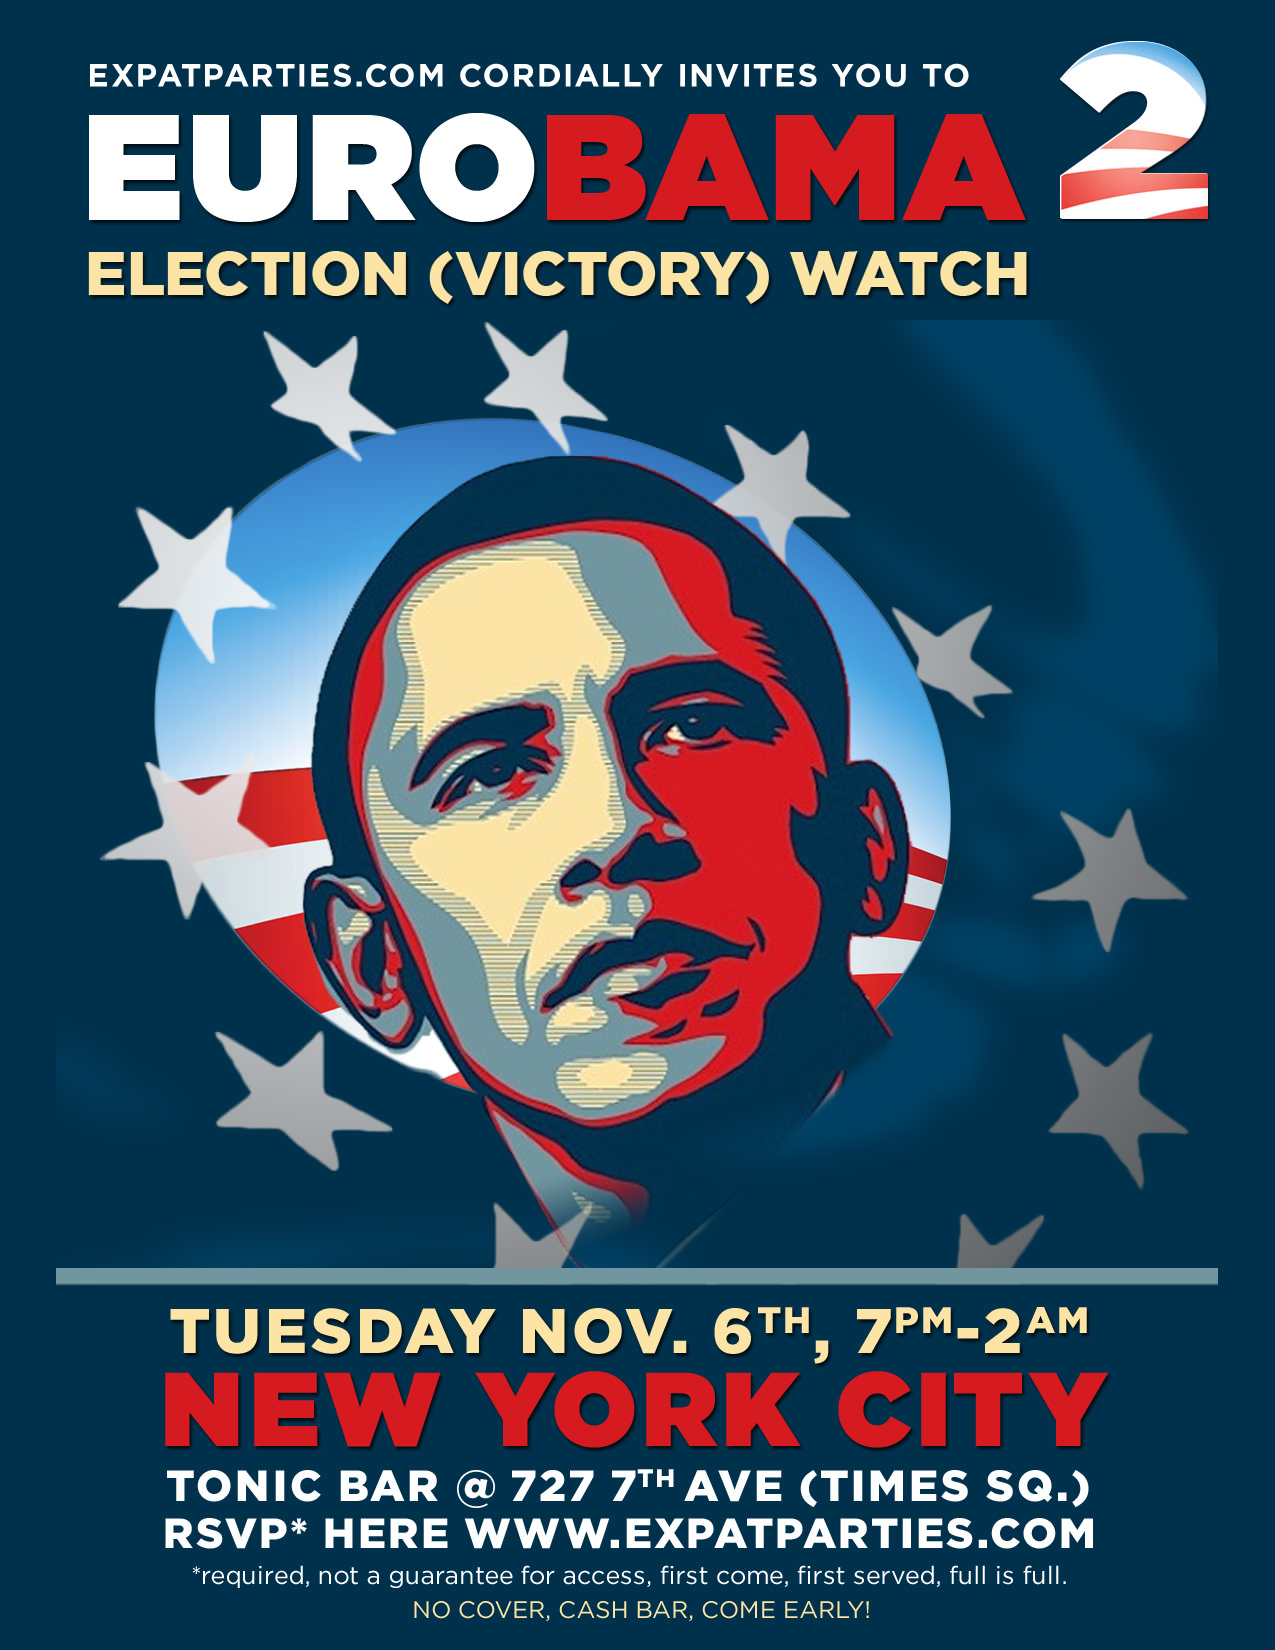 EuroBama 2 - Election Victory Watch Invite 2012